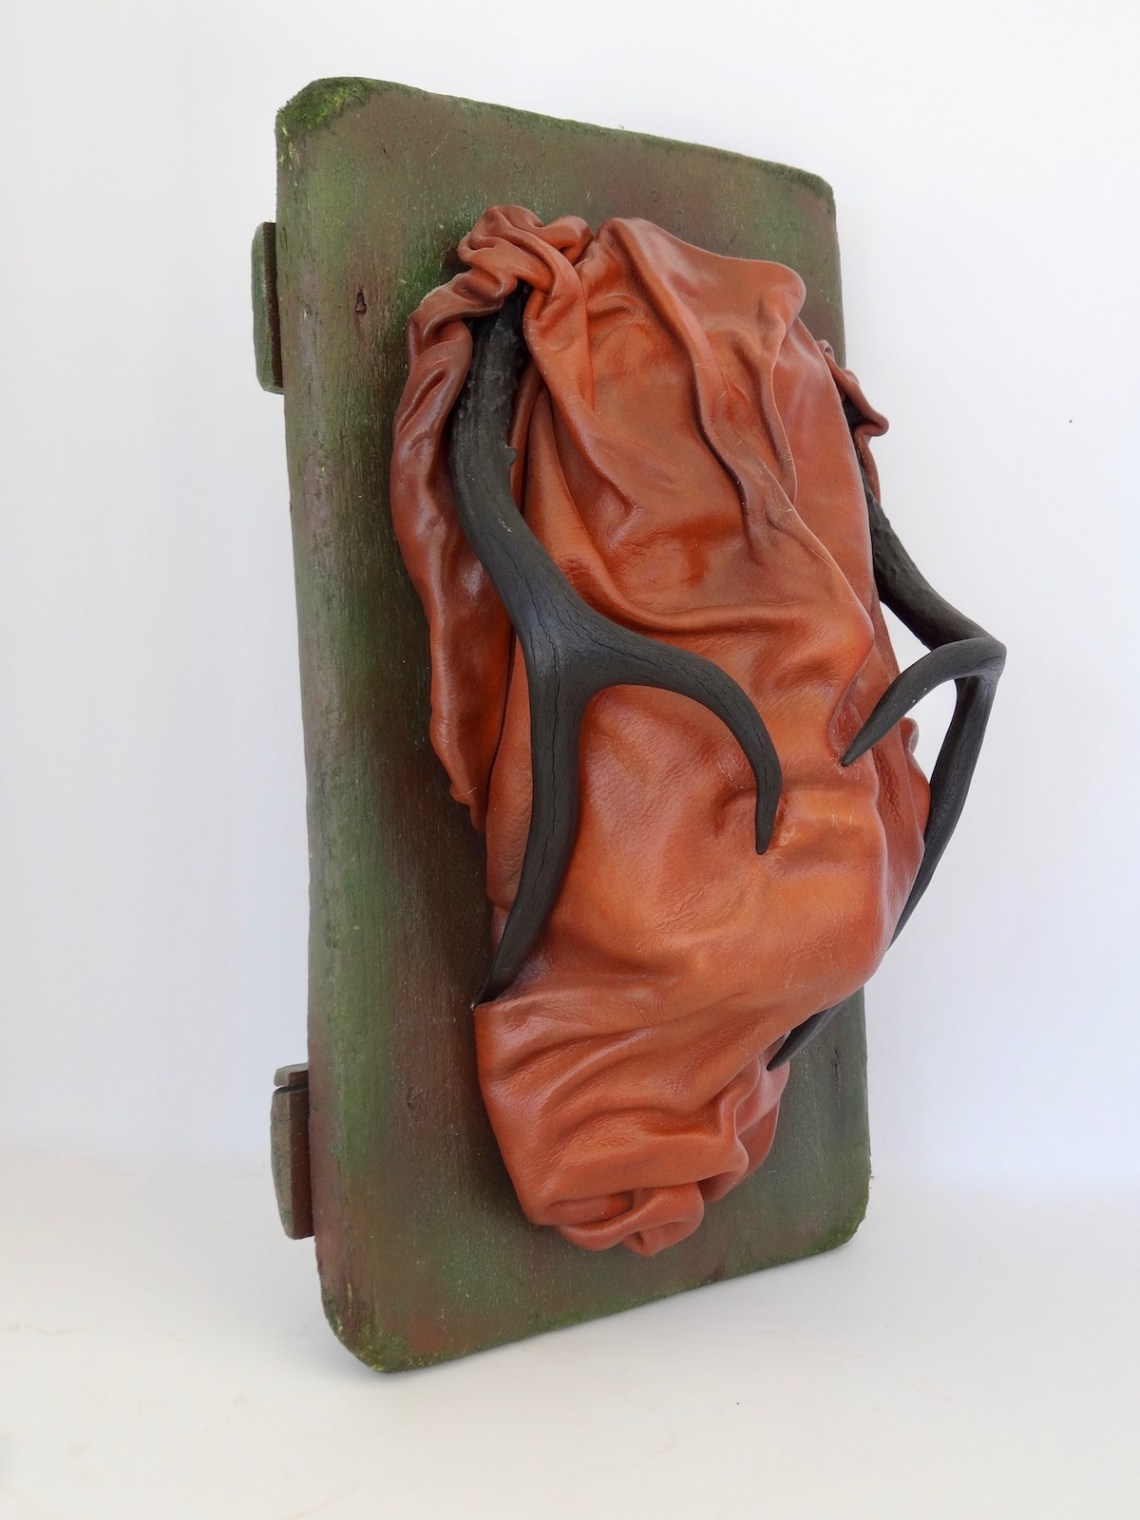 "Title The Man on the Bus Medium Mixed Media Assemblage, wet molded leather, antique objects Size 16""H x 10""W x 6""D"